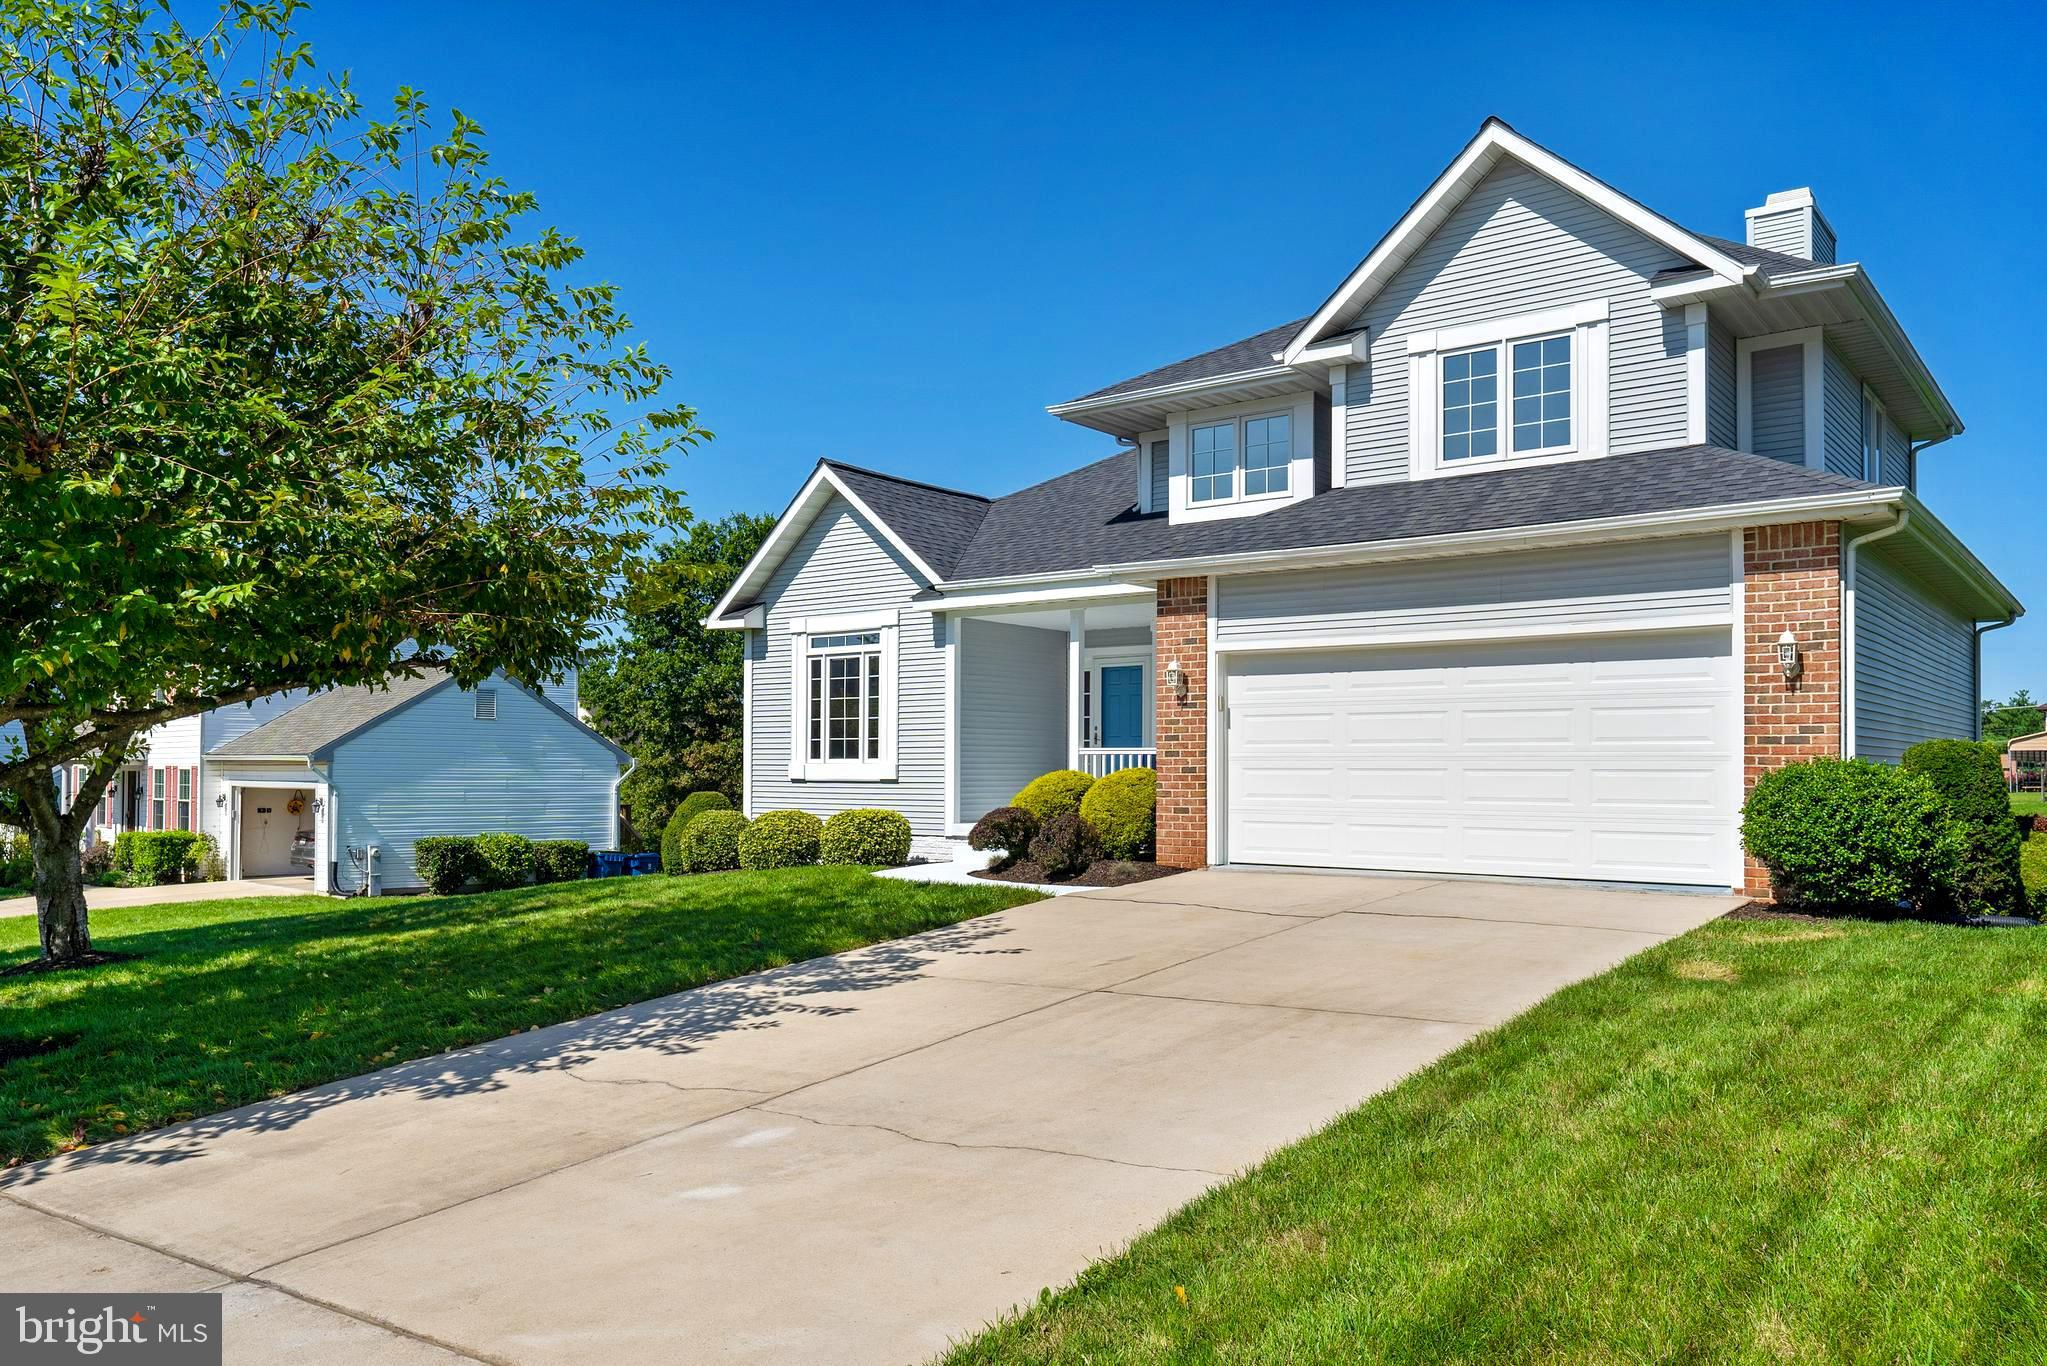 Elegant, comfortable, full of modern updates and original charm, this 4 bedroom updated home is just